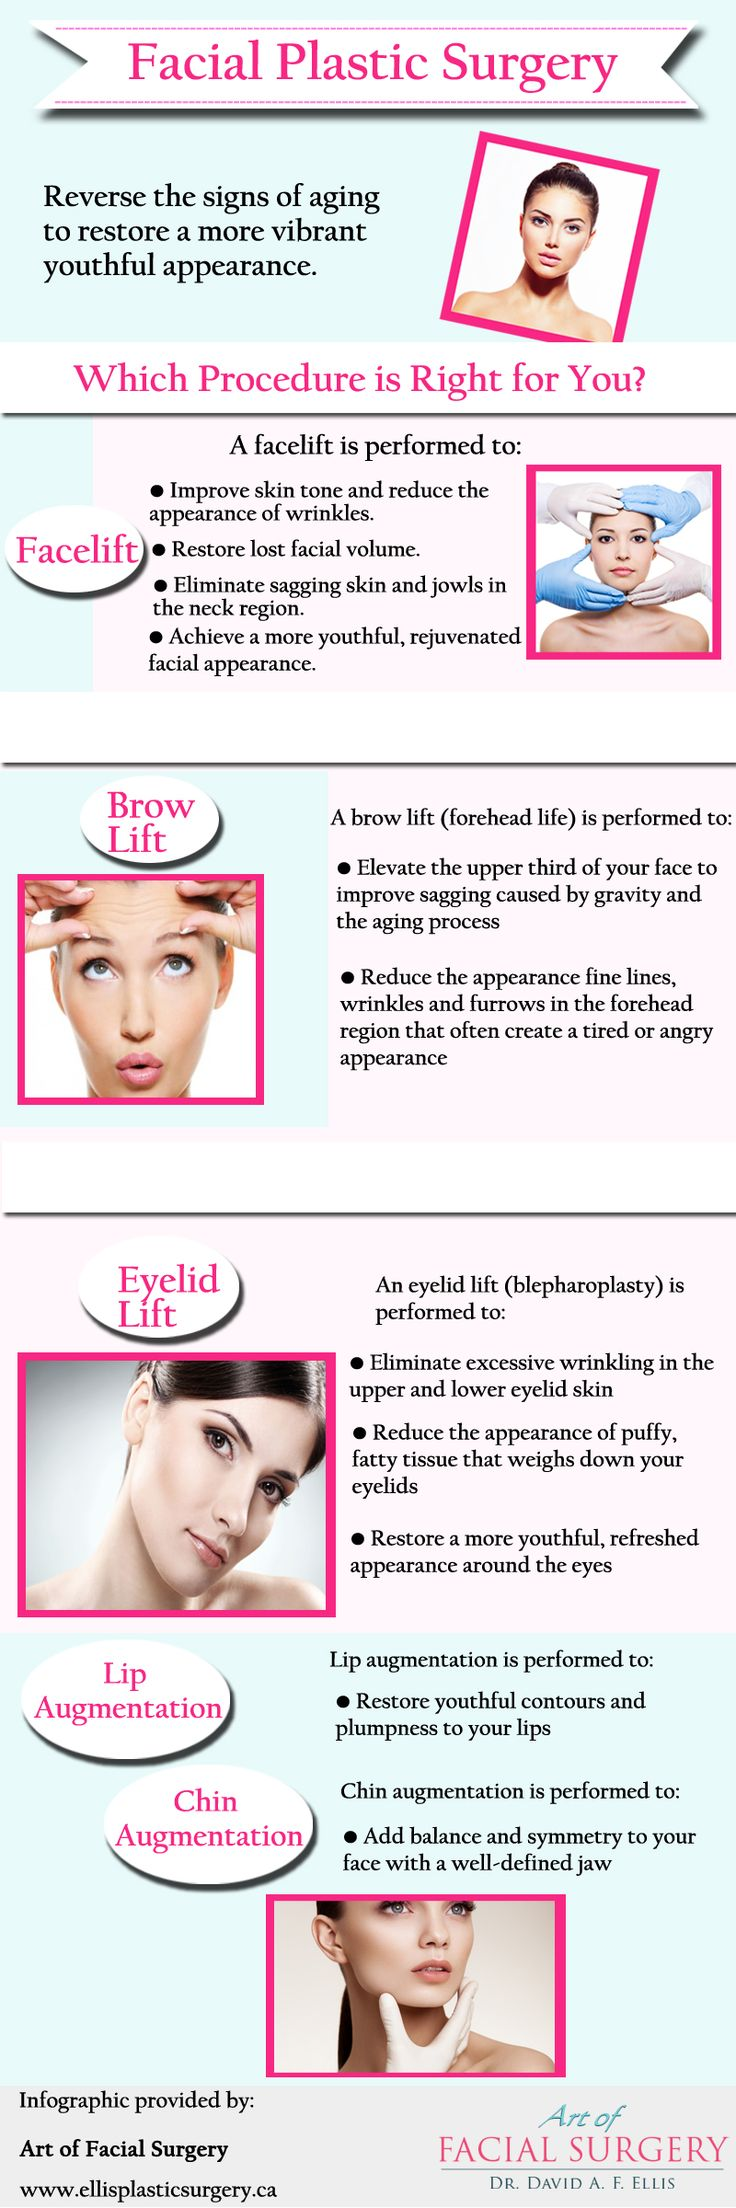 Looking for Botox Toronto specialists? We are experts inToronto Plastic Surgery, and provide you with the state-of-the-art in Toronto Facial Surgery.For more details Log on: http://www.ellisplasticsurgery.ca/